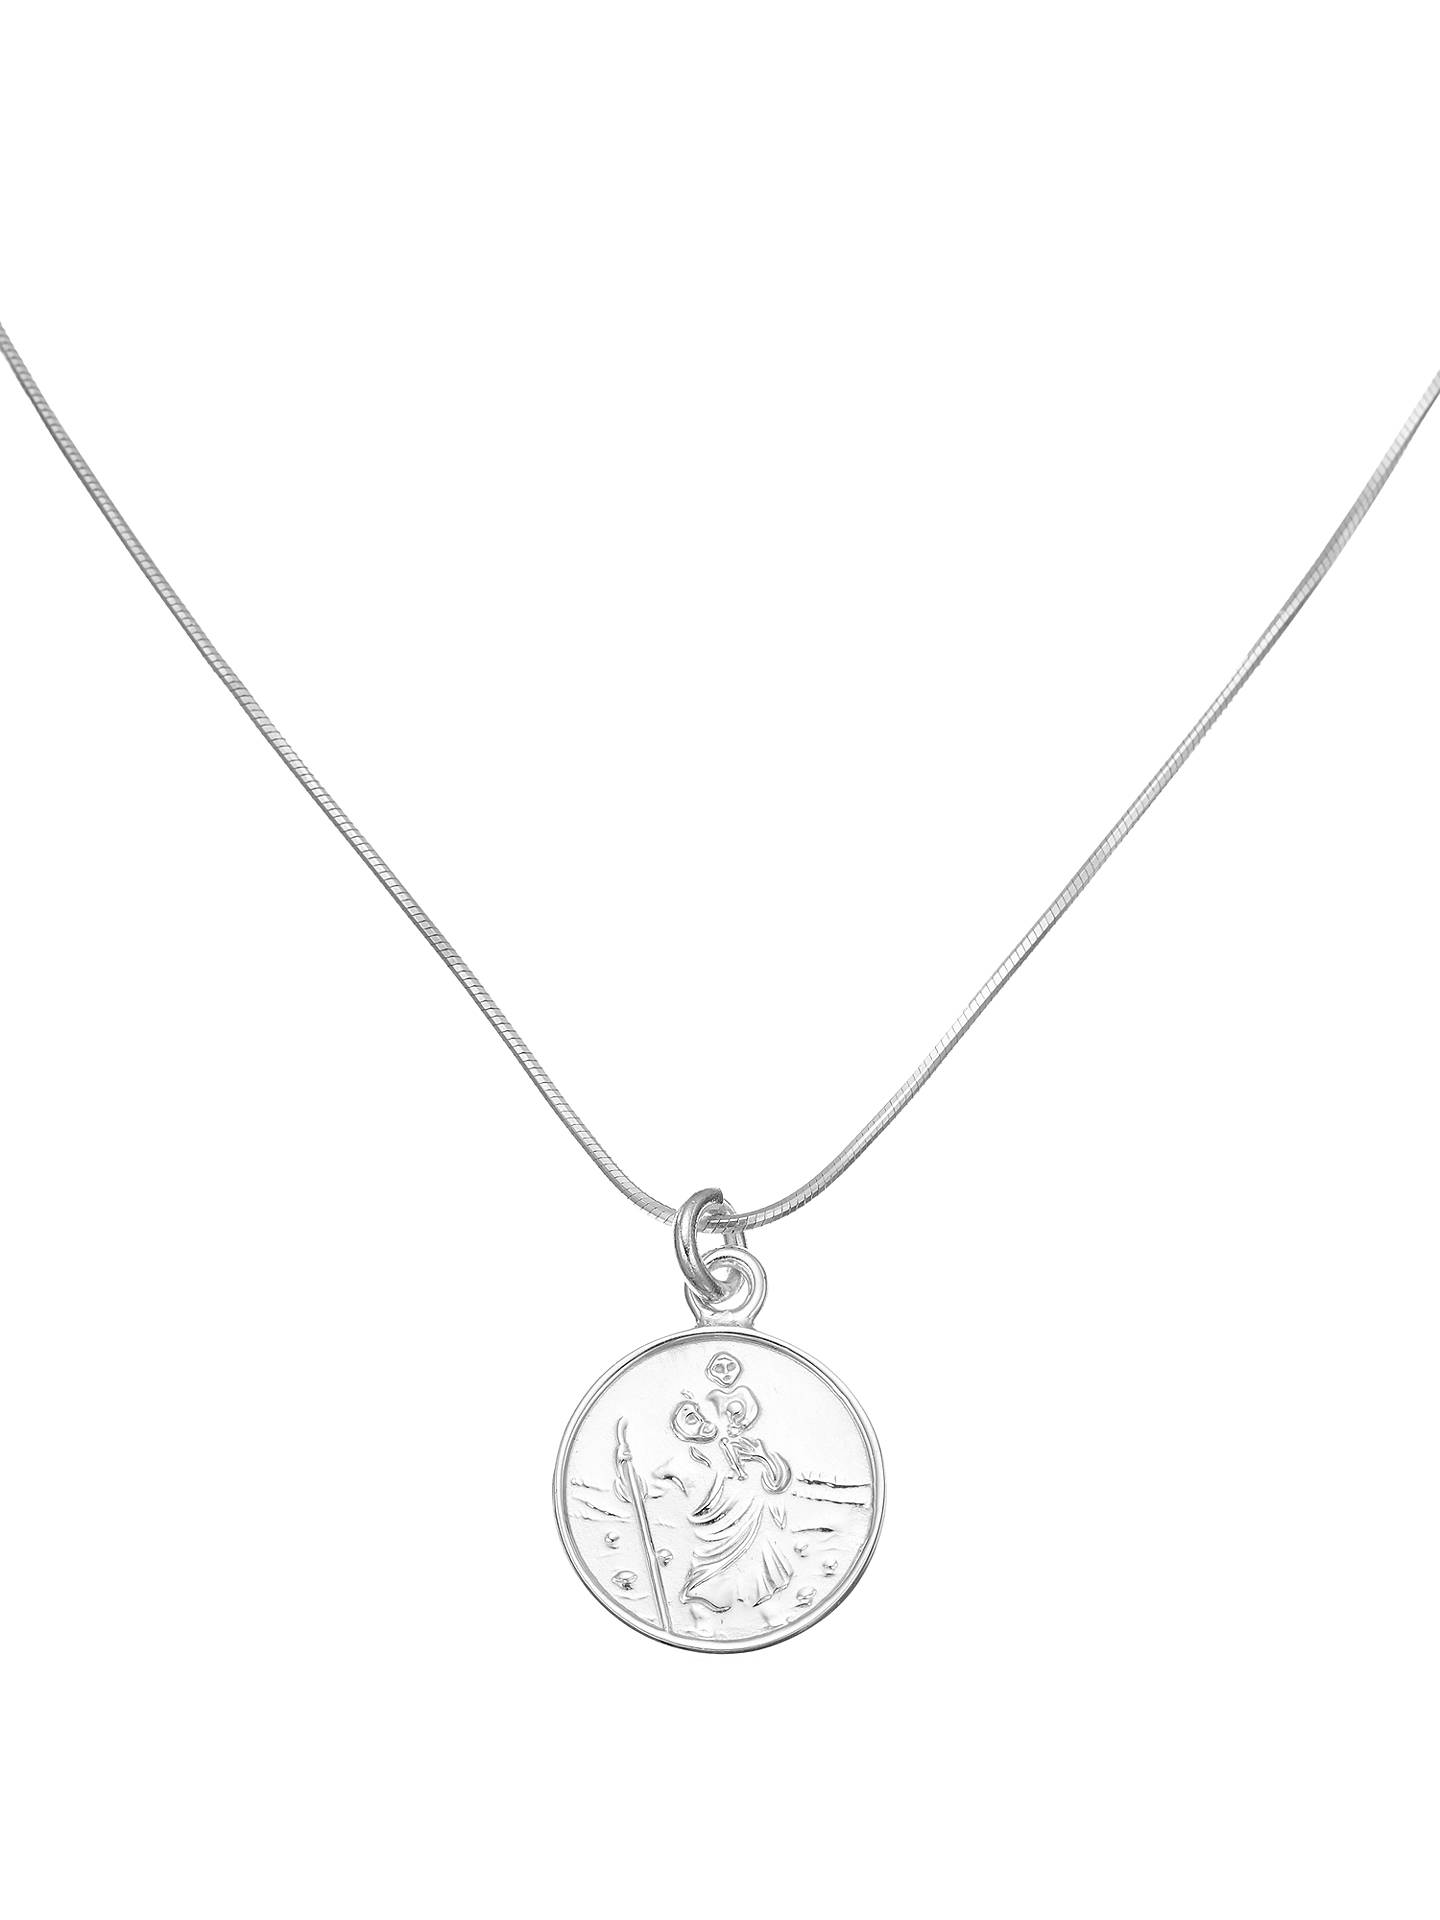 BuyJohn Lewis & Partners Sterling Silver St. Christopher Necklace Online at johnlewis.com